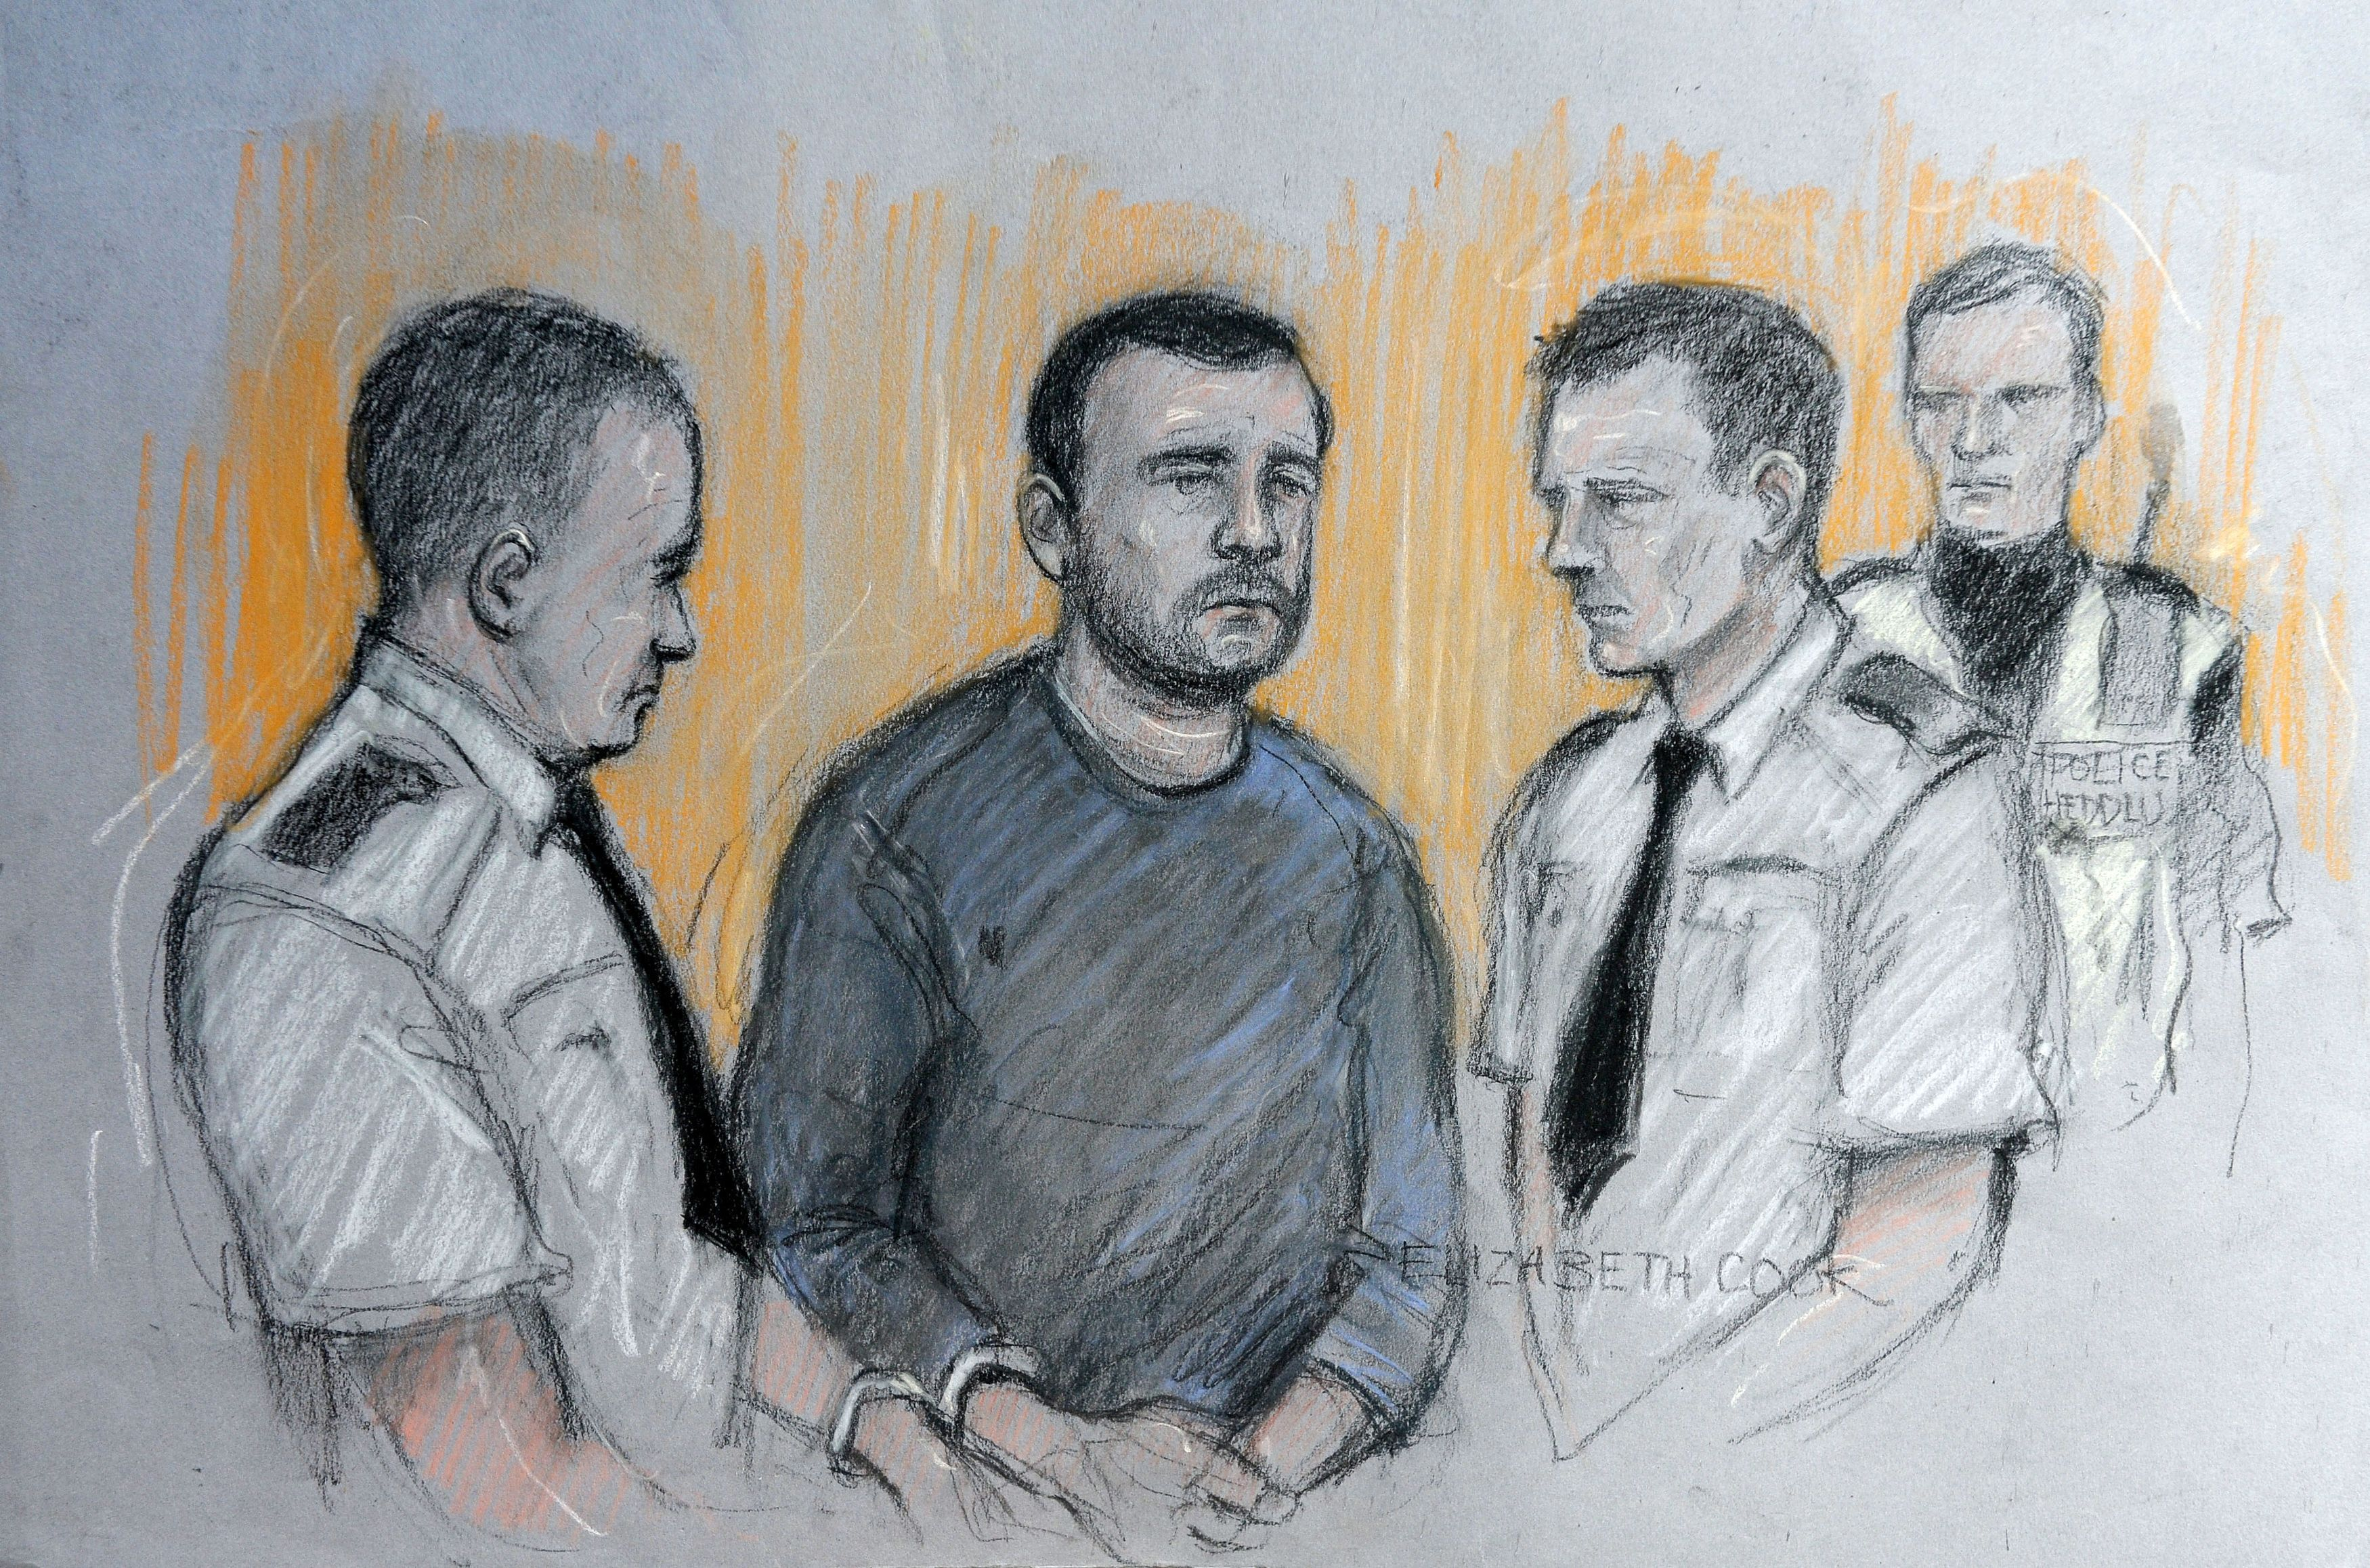 Cardiff hit-and-run driver Matthew Tvrdon 'wanted to kill more'